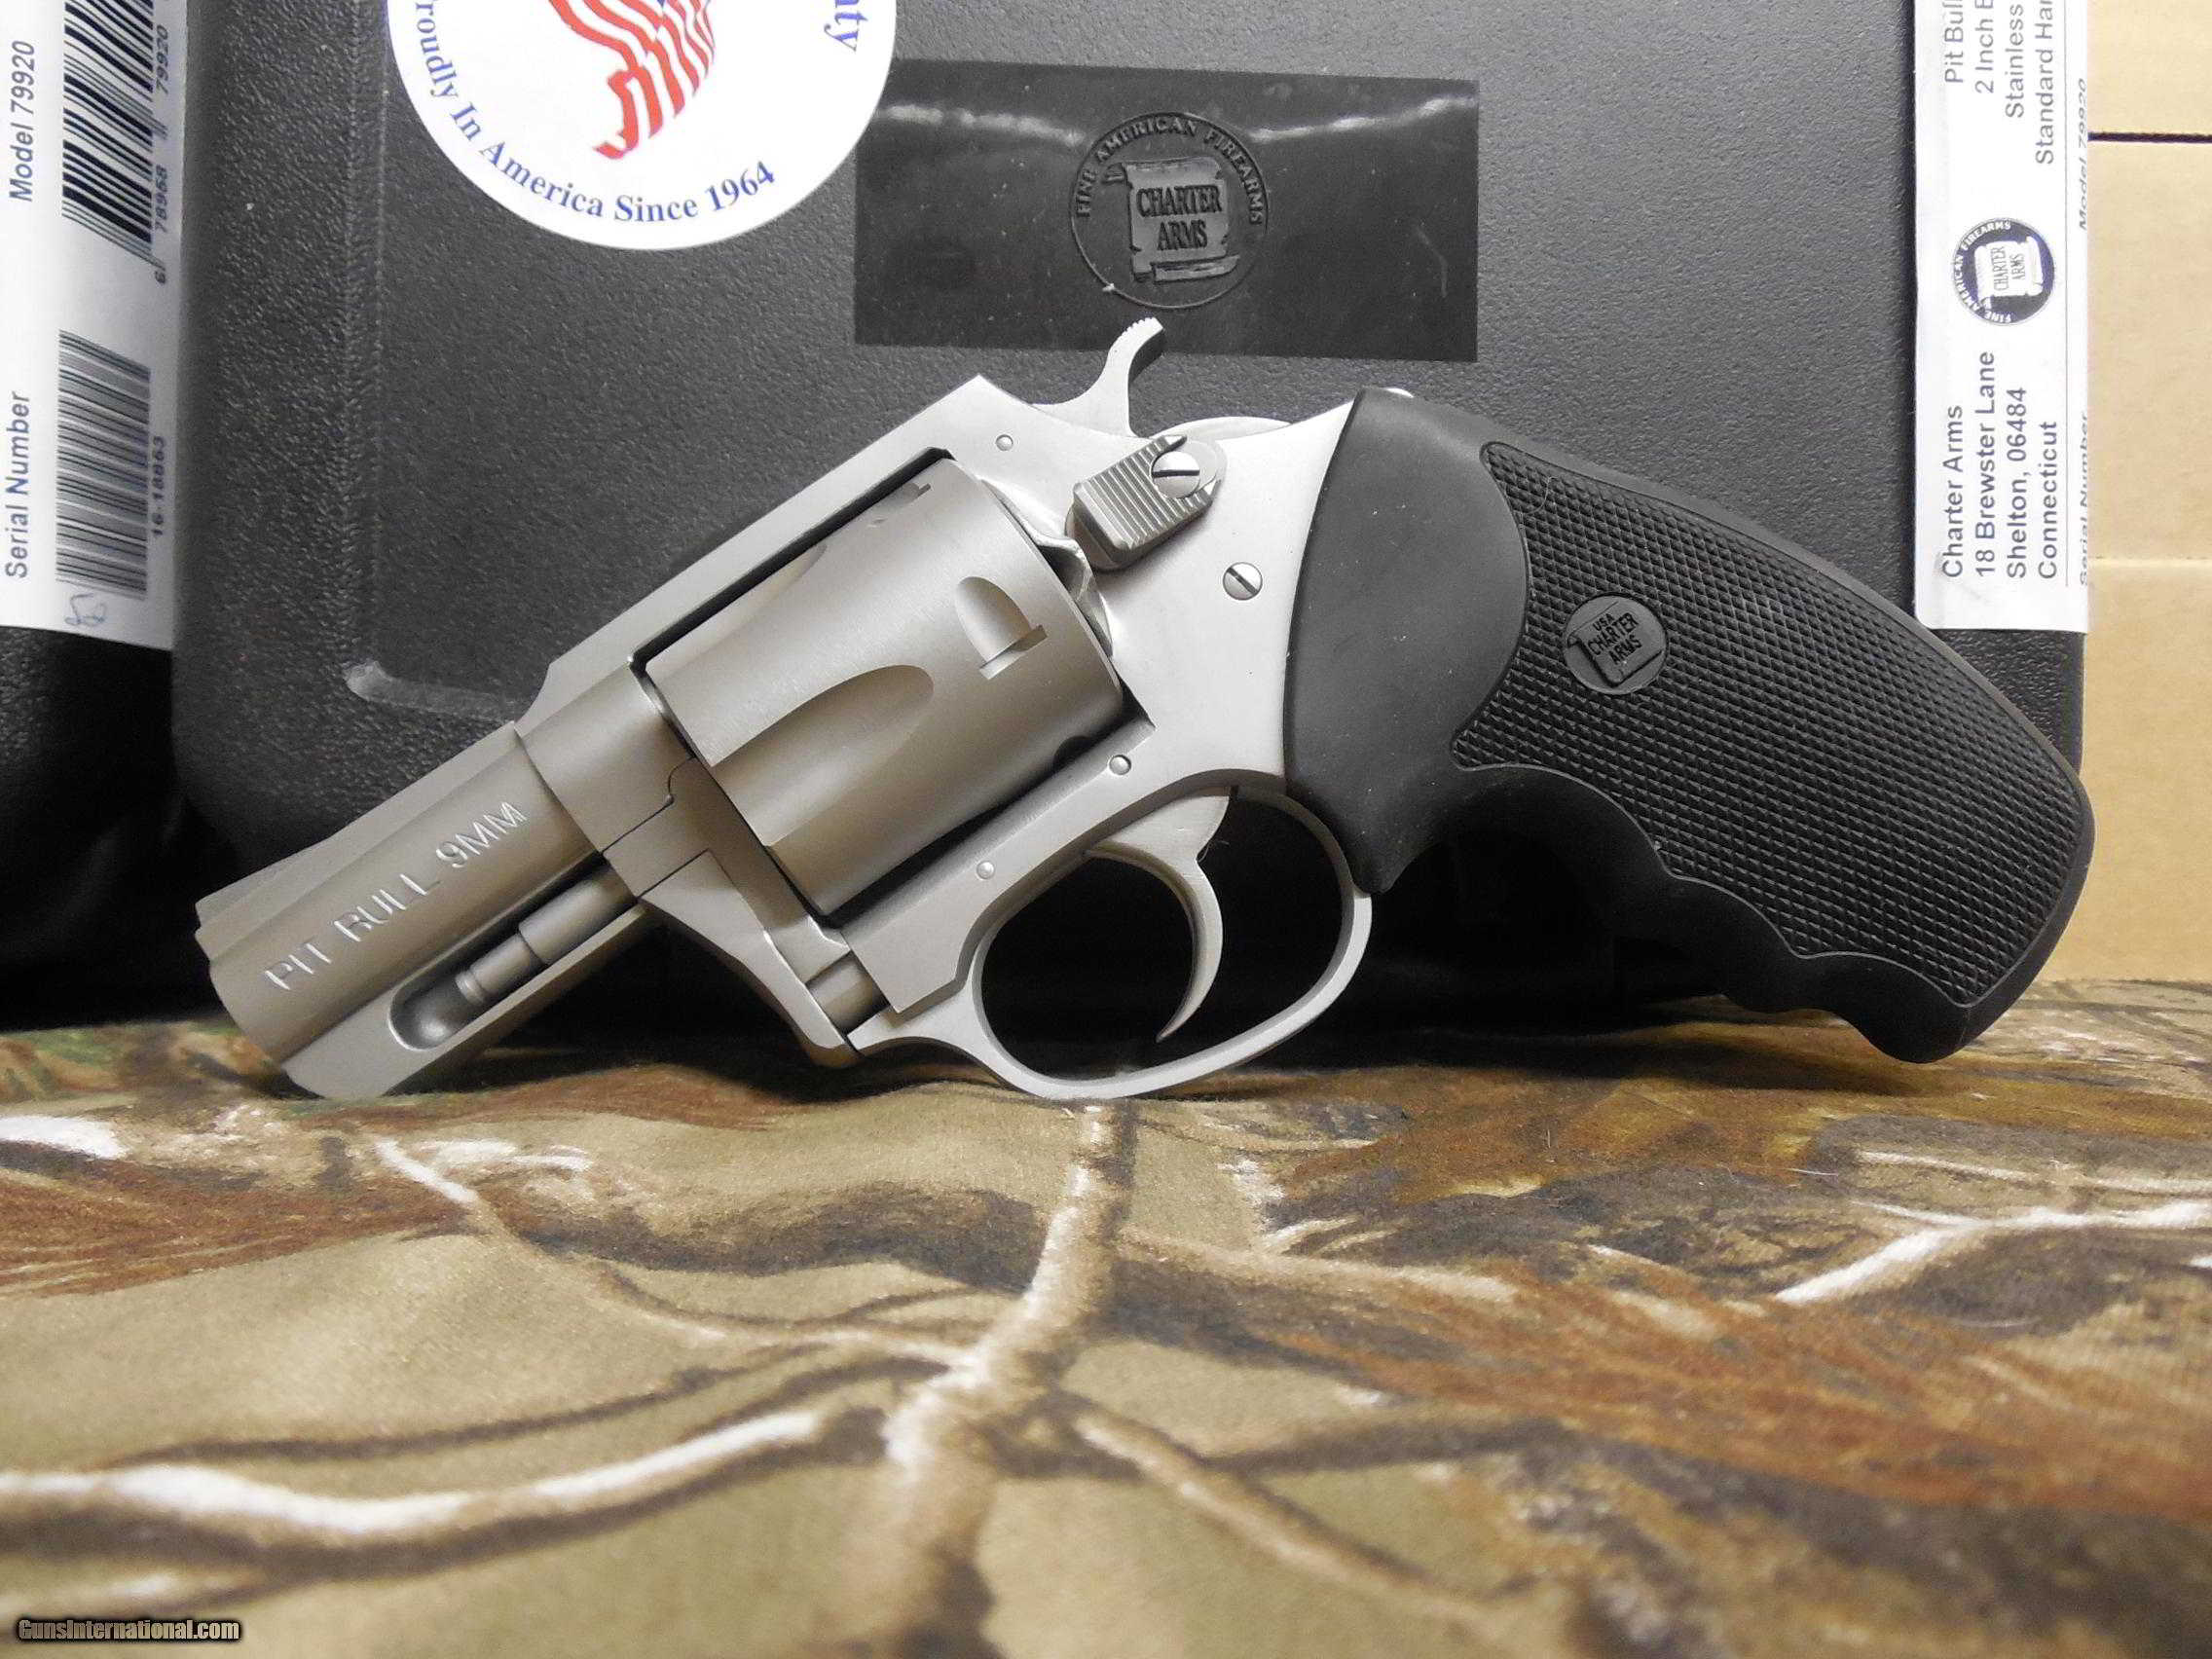 Charter Arms, 9 - M M PIT BULL, REVOLVER 2